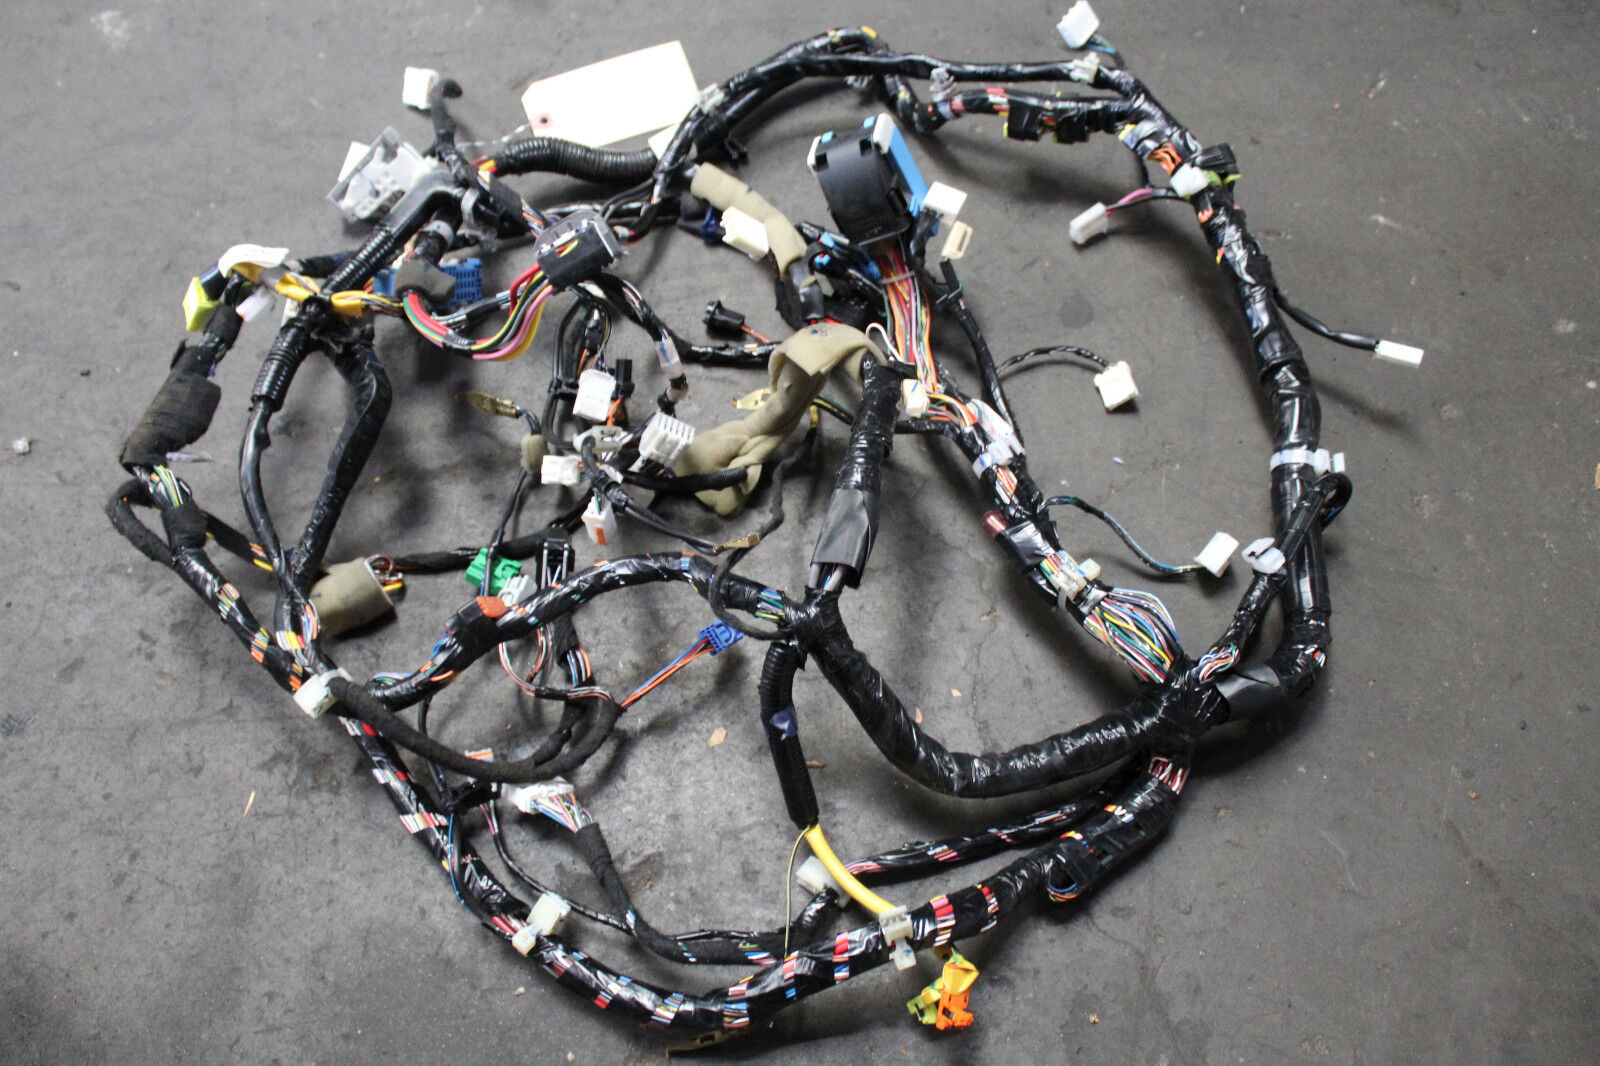 Used Mazda Ignition Wires For Sale Mazdaspeed Wiring Harness 2007 Speed 3 Dash Board C752